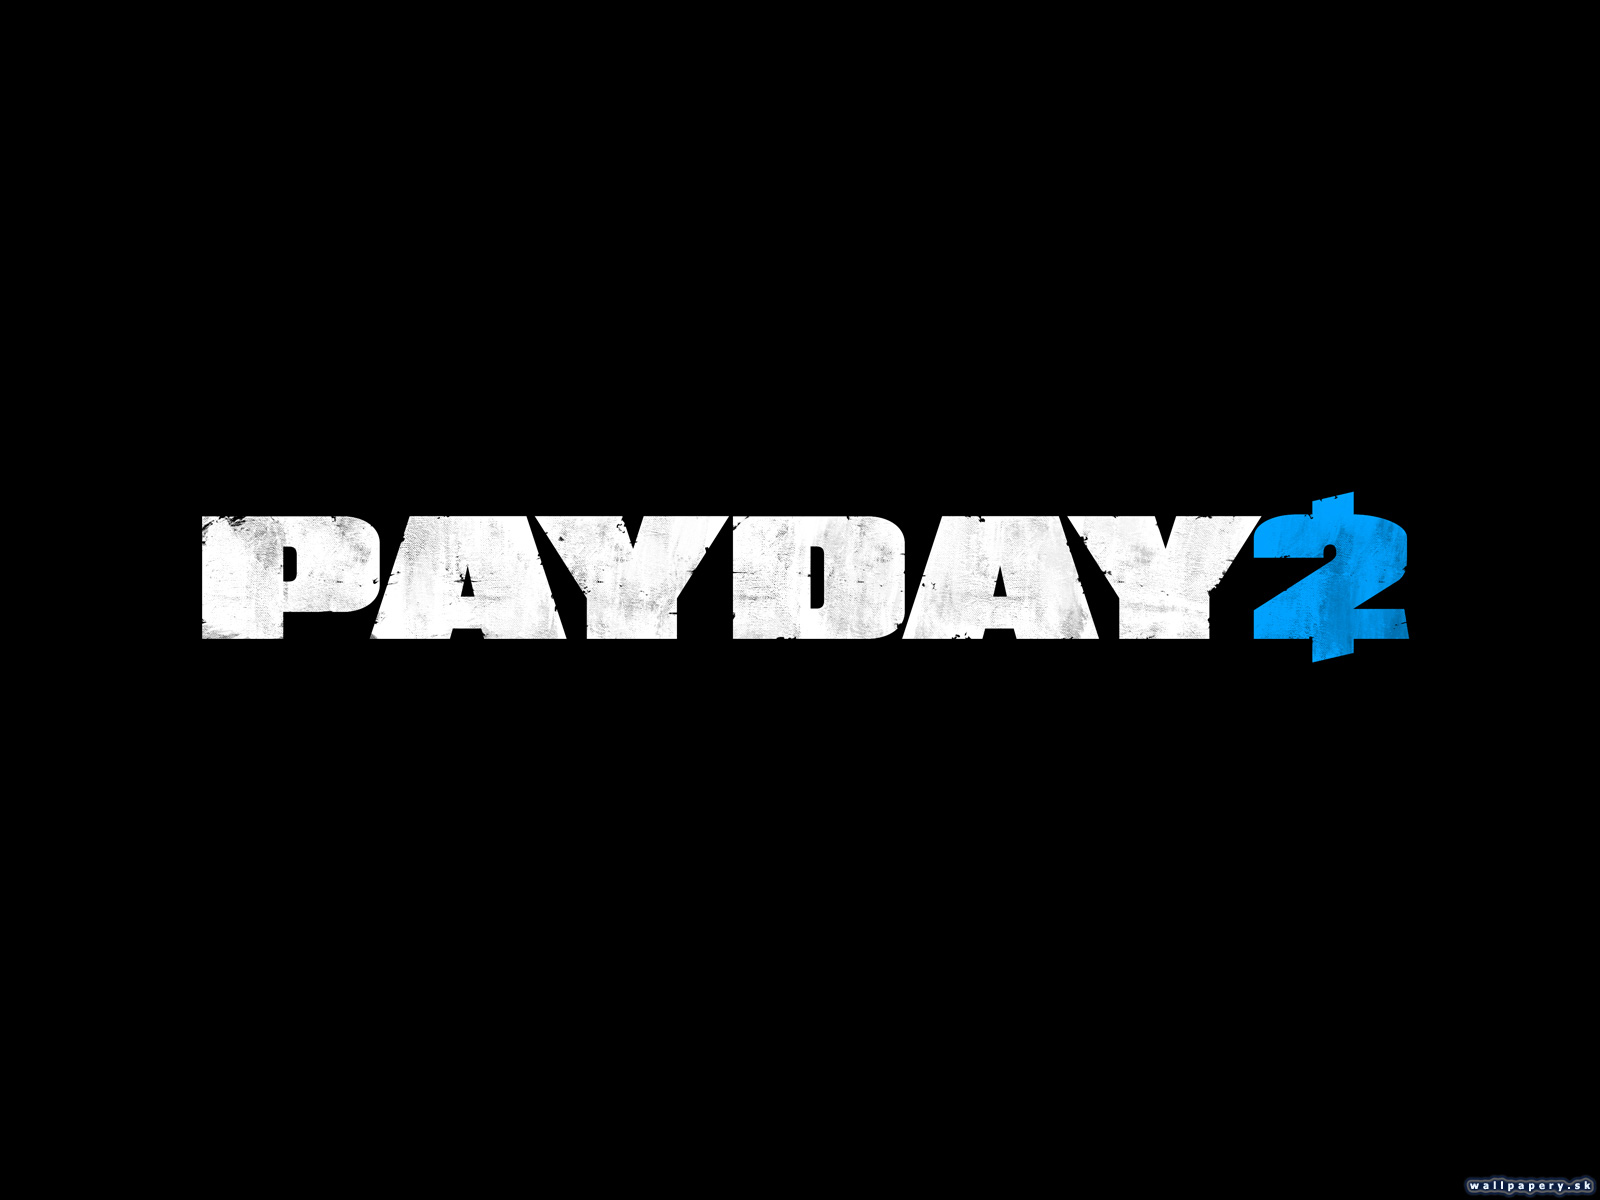 Payday 2 - wallpaper 3